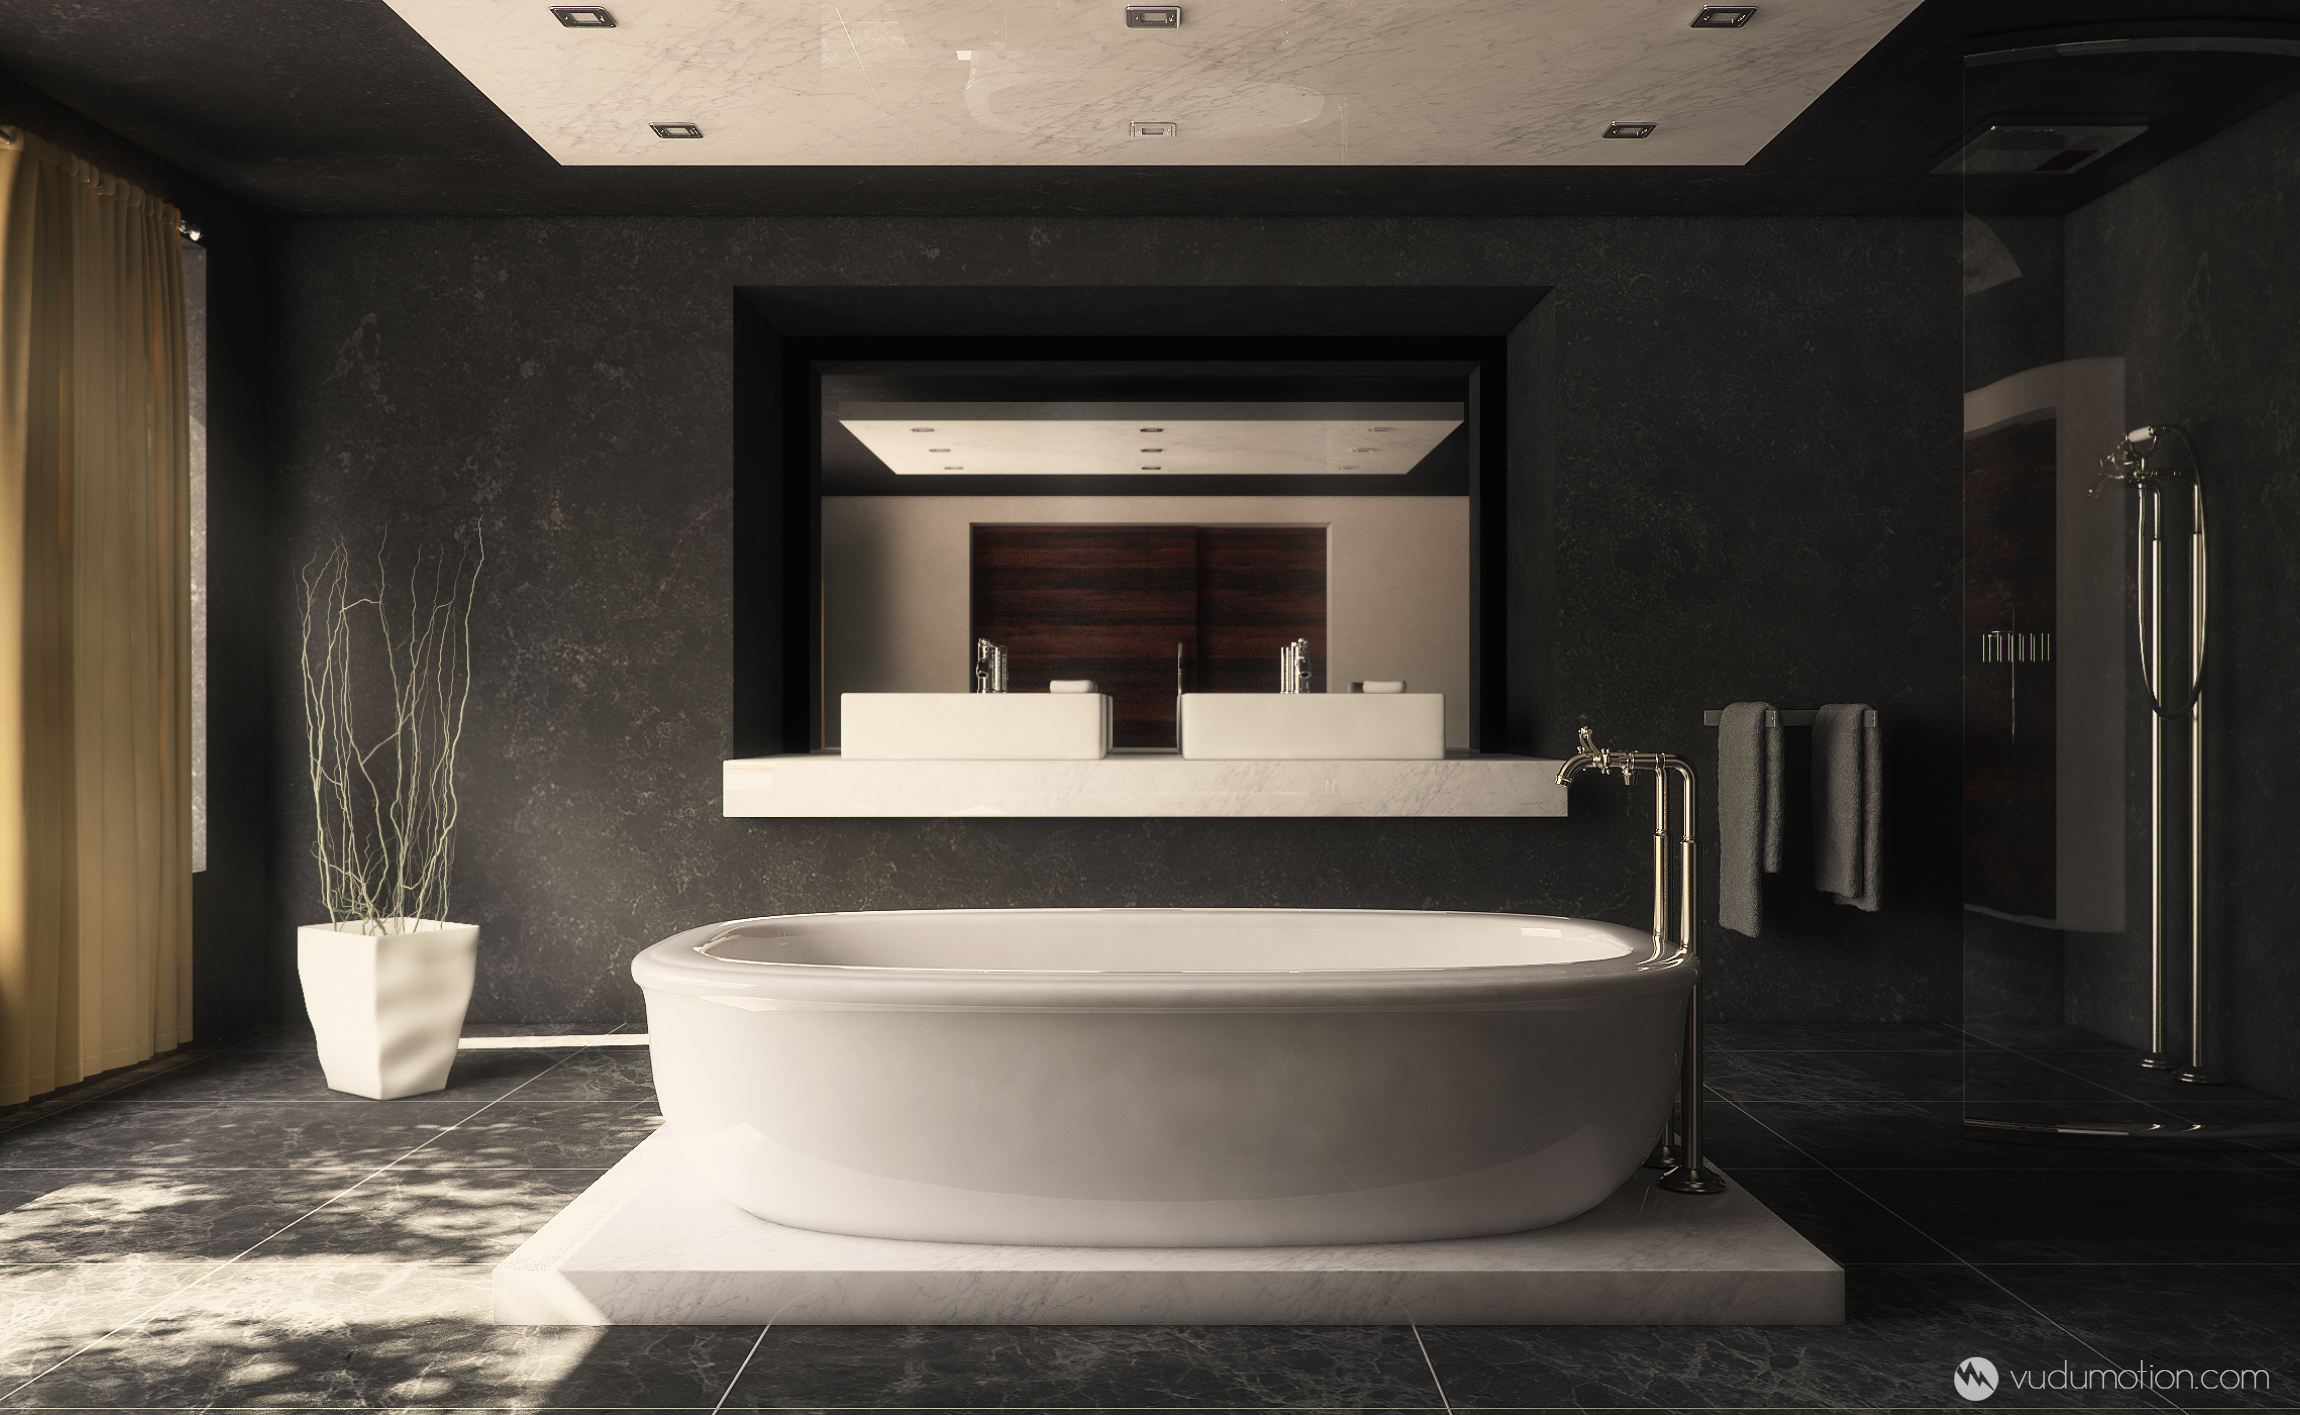 Contemporary Bathroom By Vudumotion On Deviantart